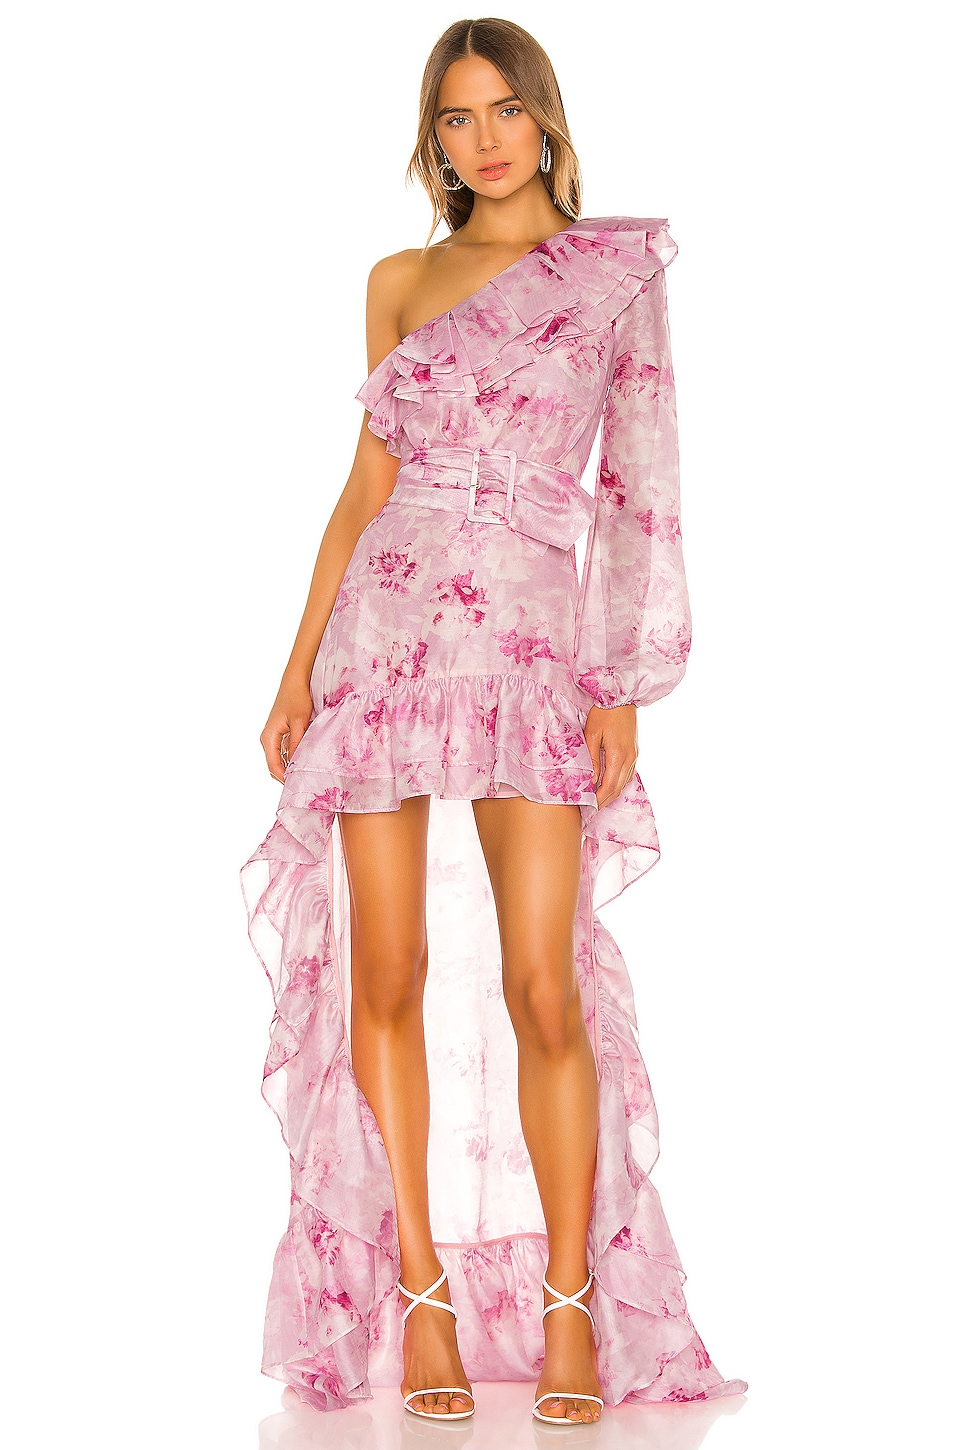 Atoir Whirlwind Dress in Peony Print